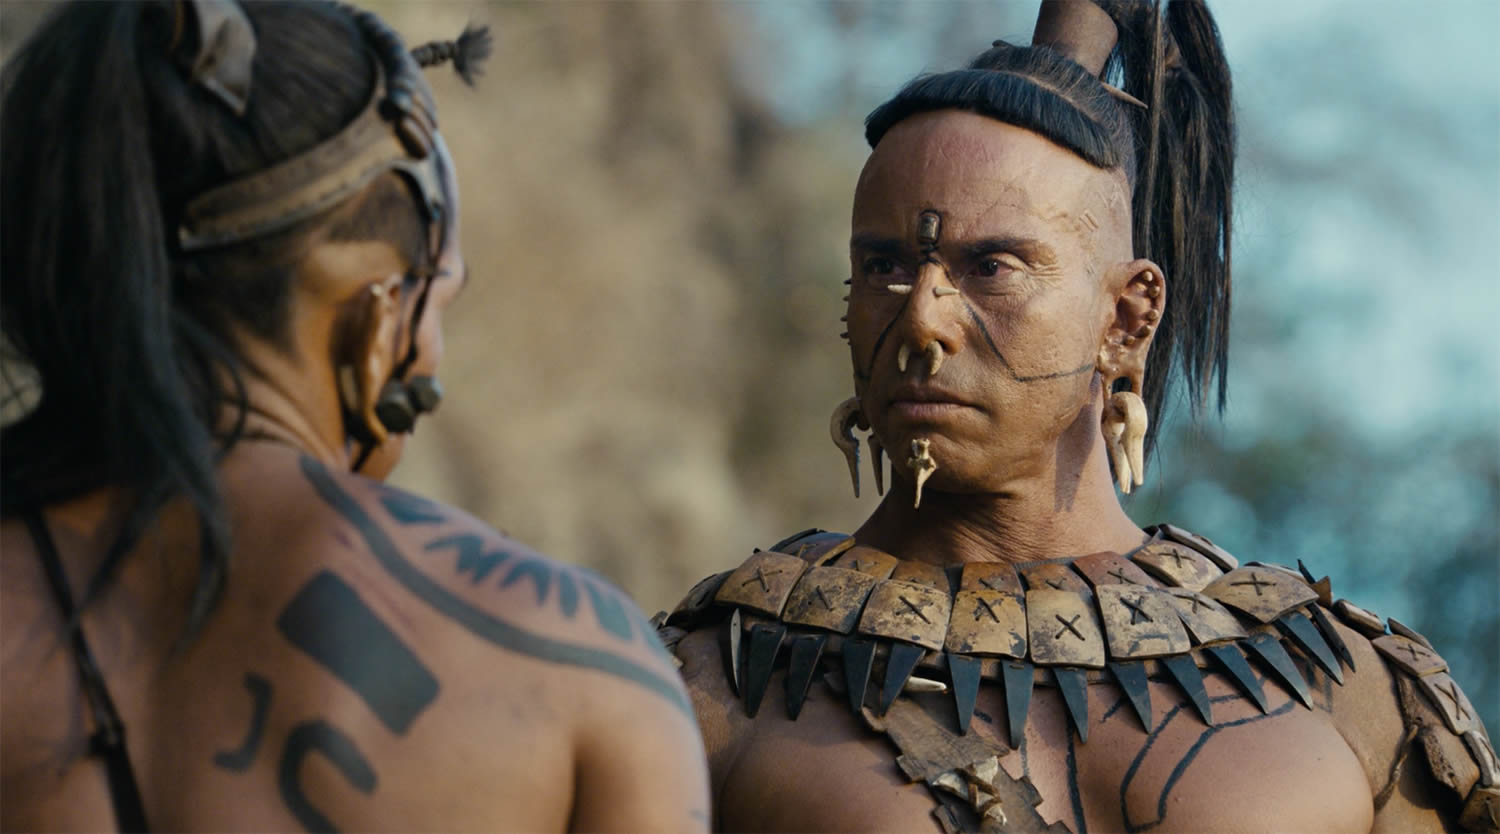 Mayans With Tattoos And Piercings In Apocalypto Movie